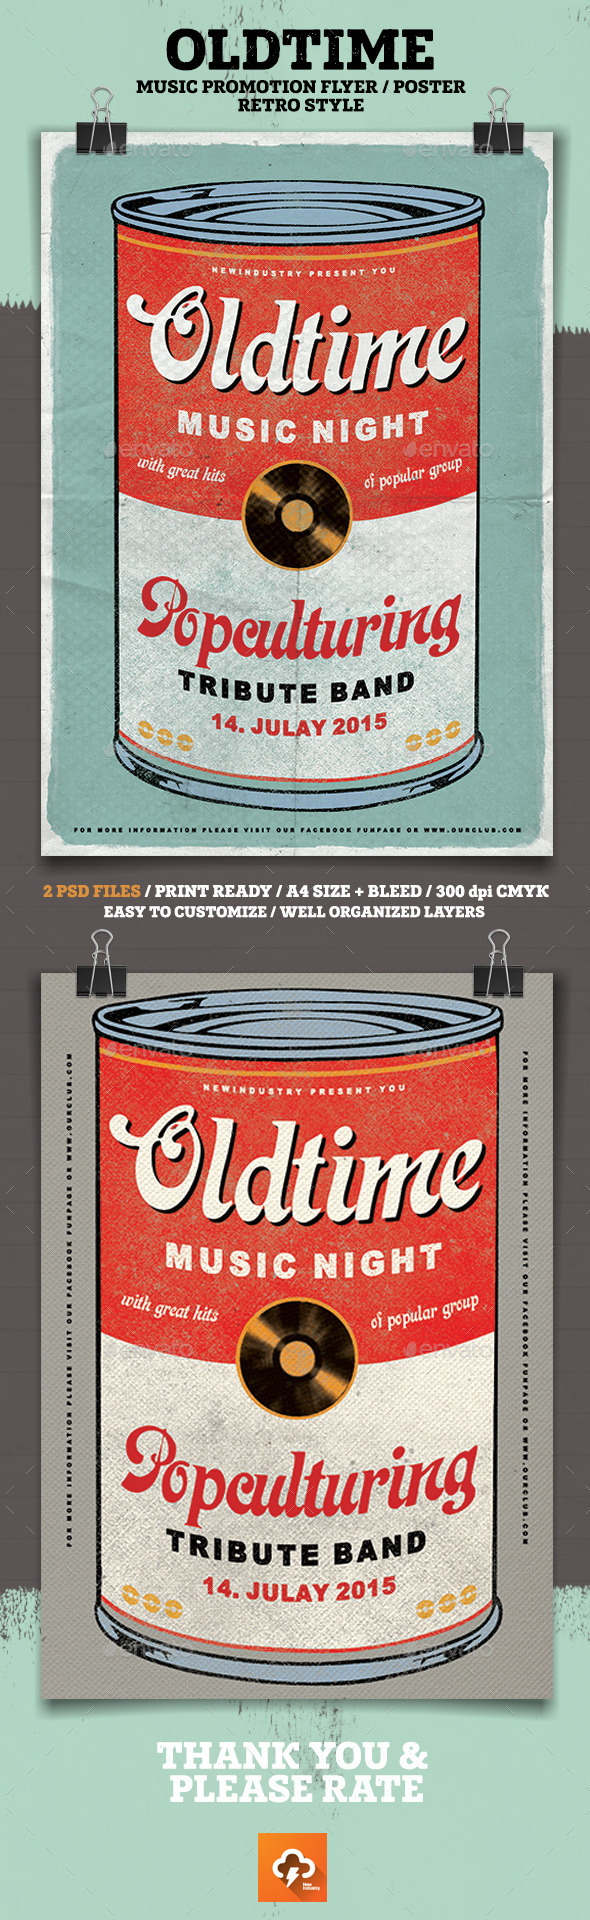 Oldtime Music Flyer/Poster - Events Flyers